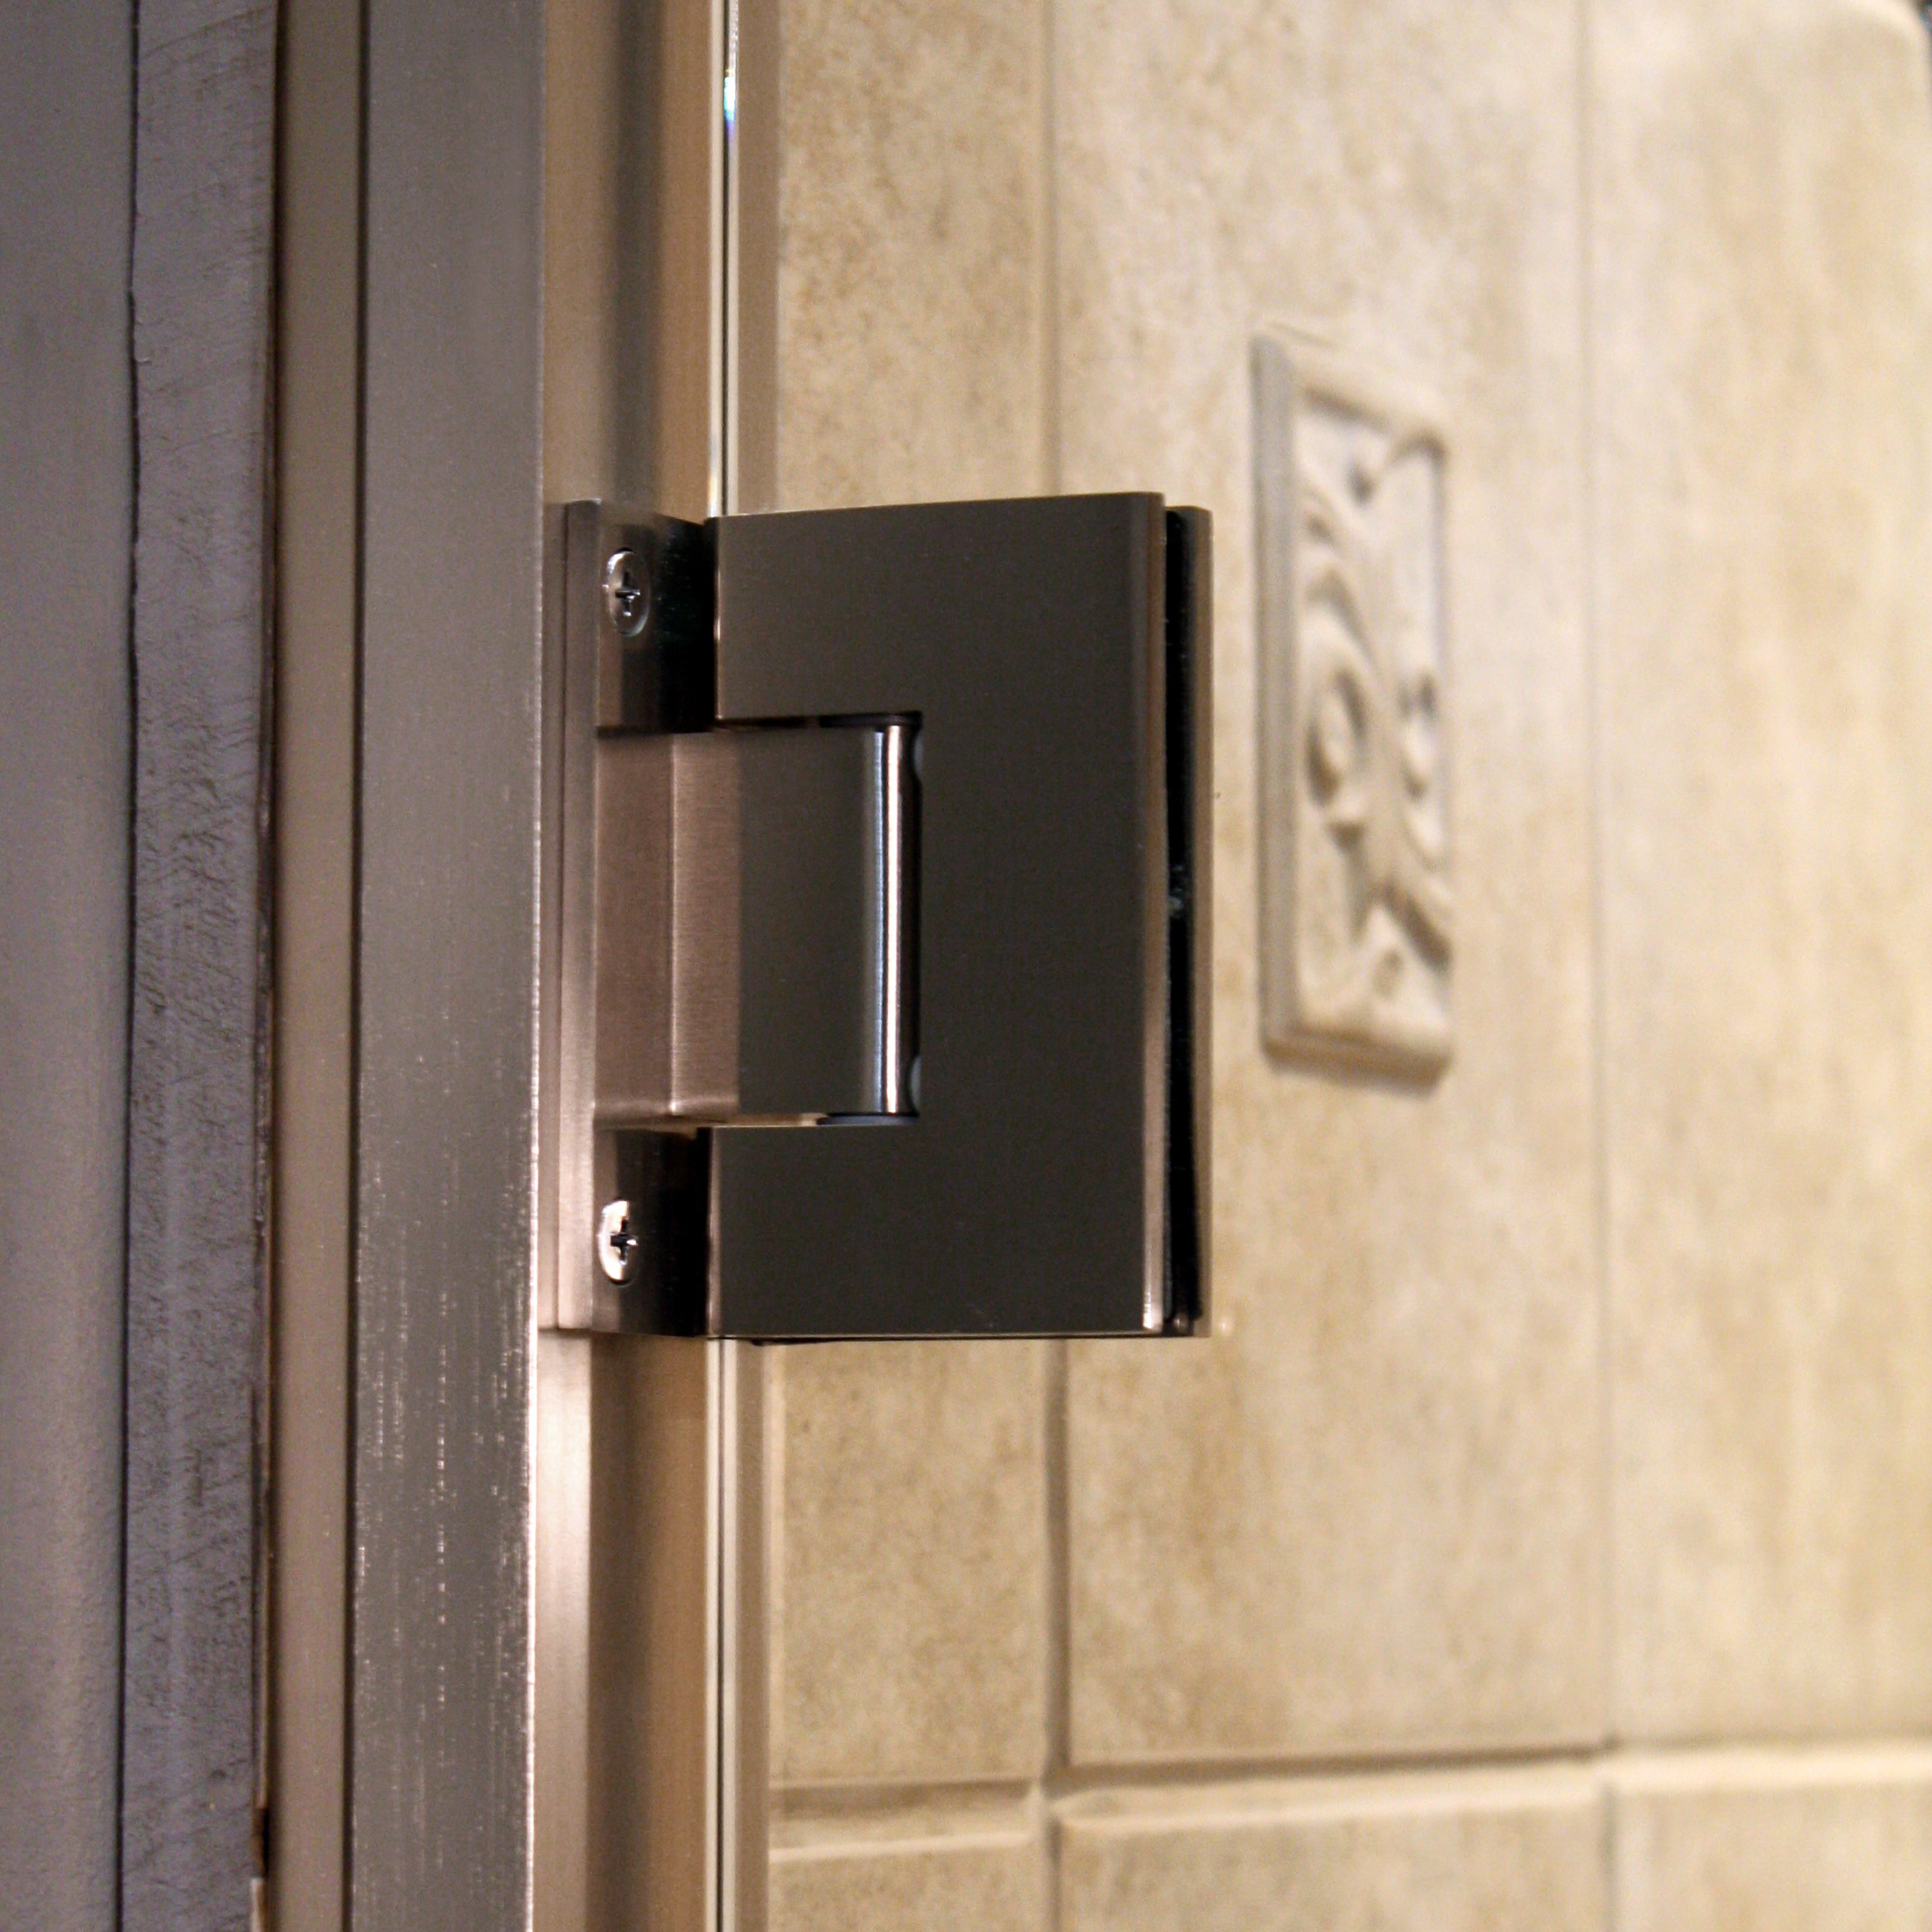 Shower Enclosure, TruFit Series - Brushed Nickel - Detail